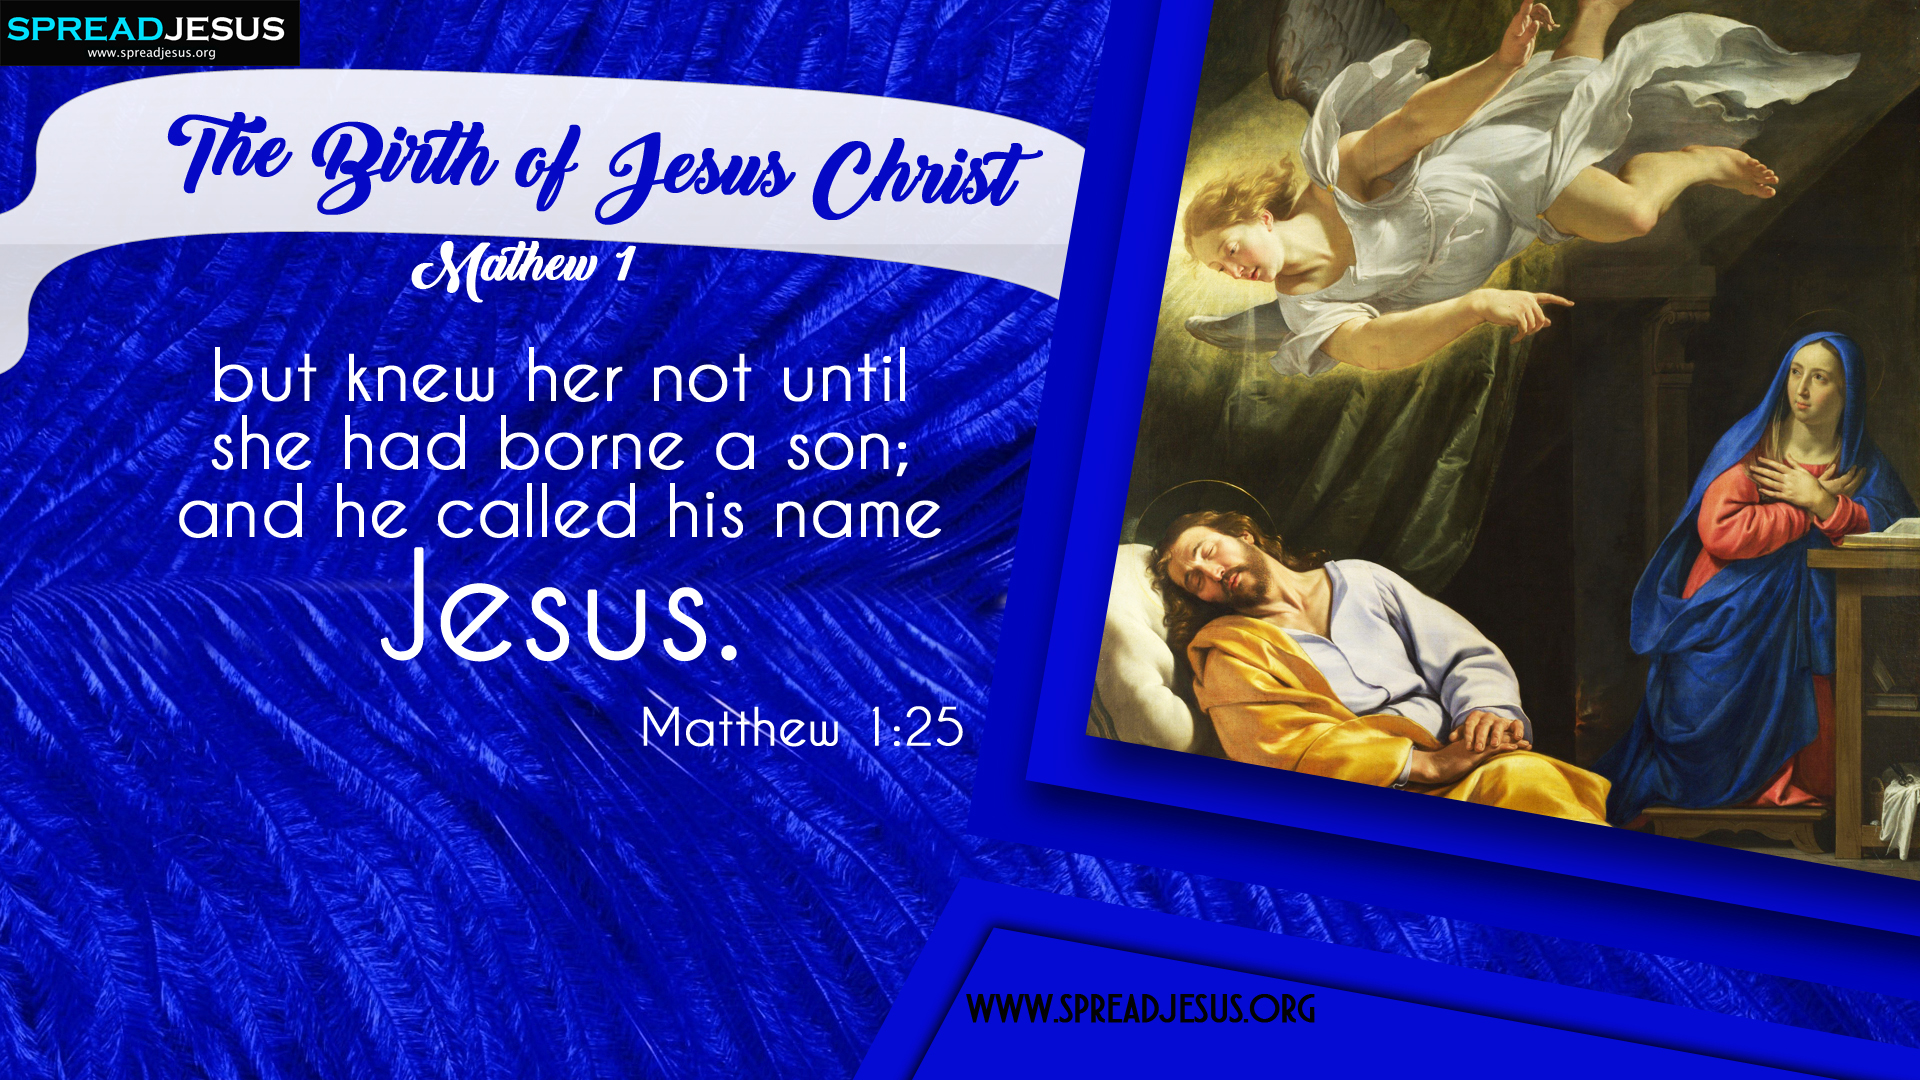 The Birth of Jesus Christ Matthew 1:25 HD-Wallpapers